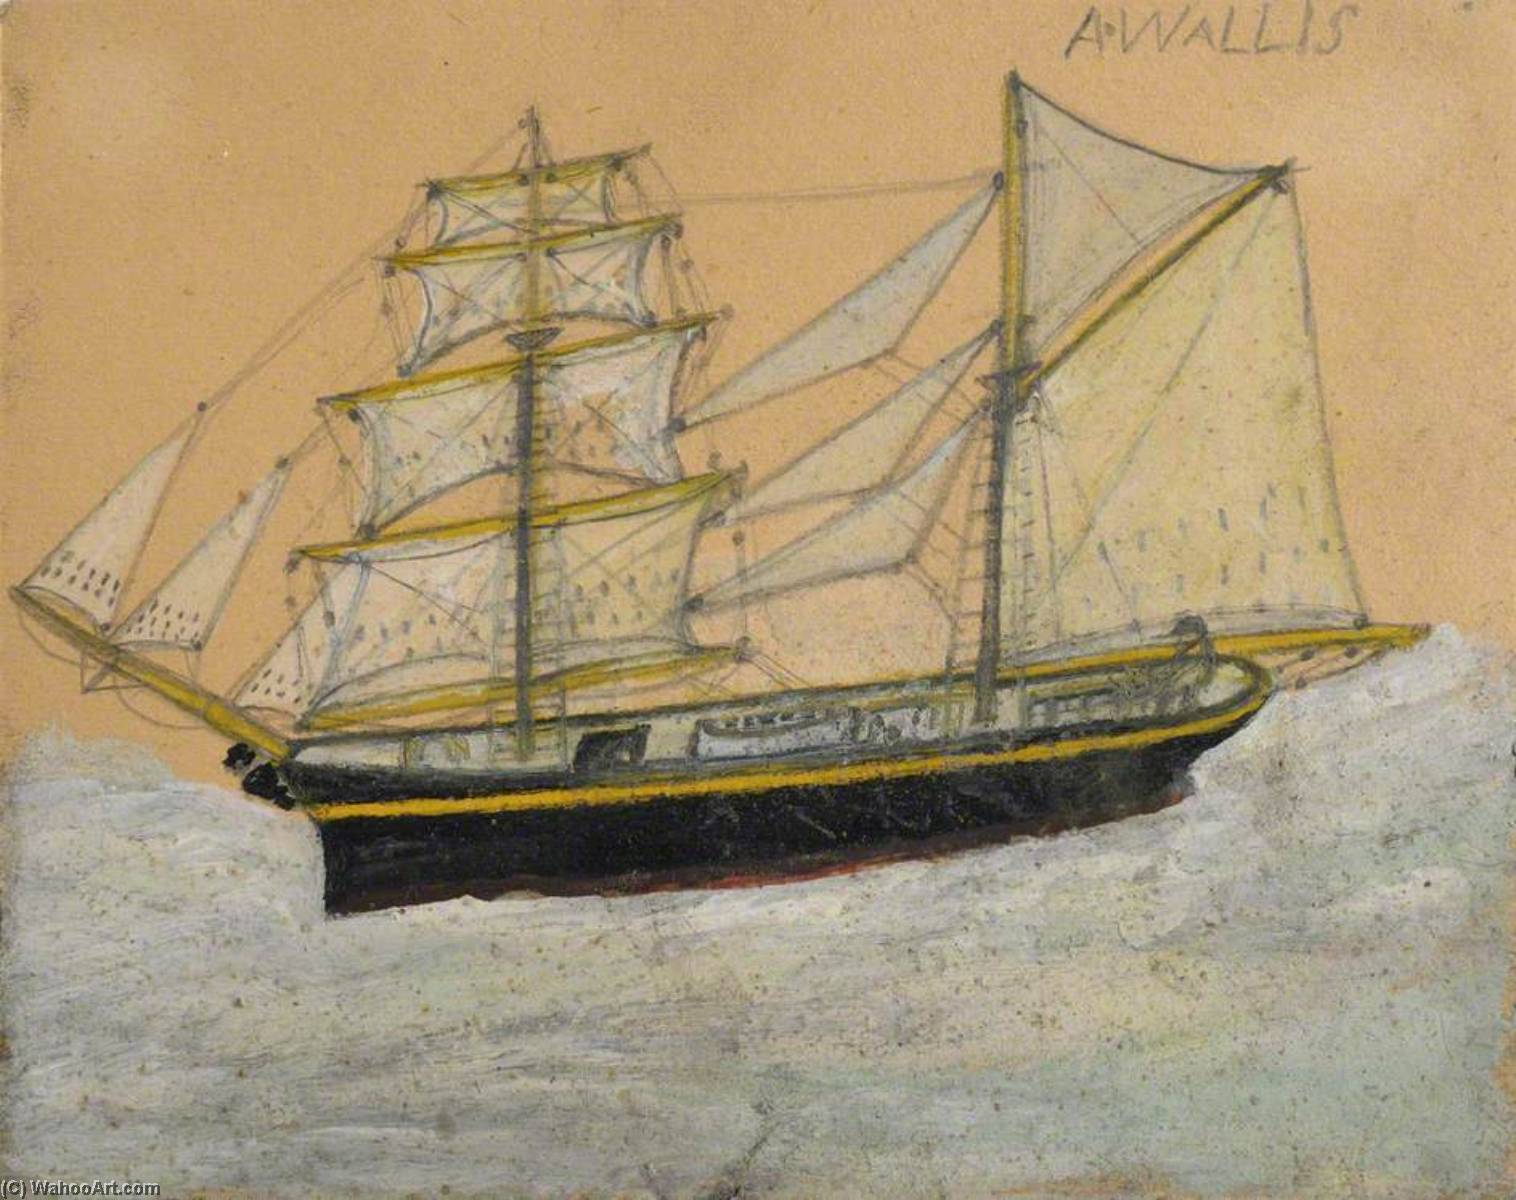 Получить Качественные Печати В Музеях | Бригантина с  марионетка  по Alfred Wallis (1855-1942, United Kingdom) | WahooArt.com